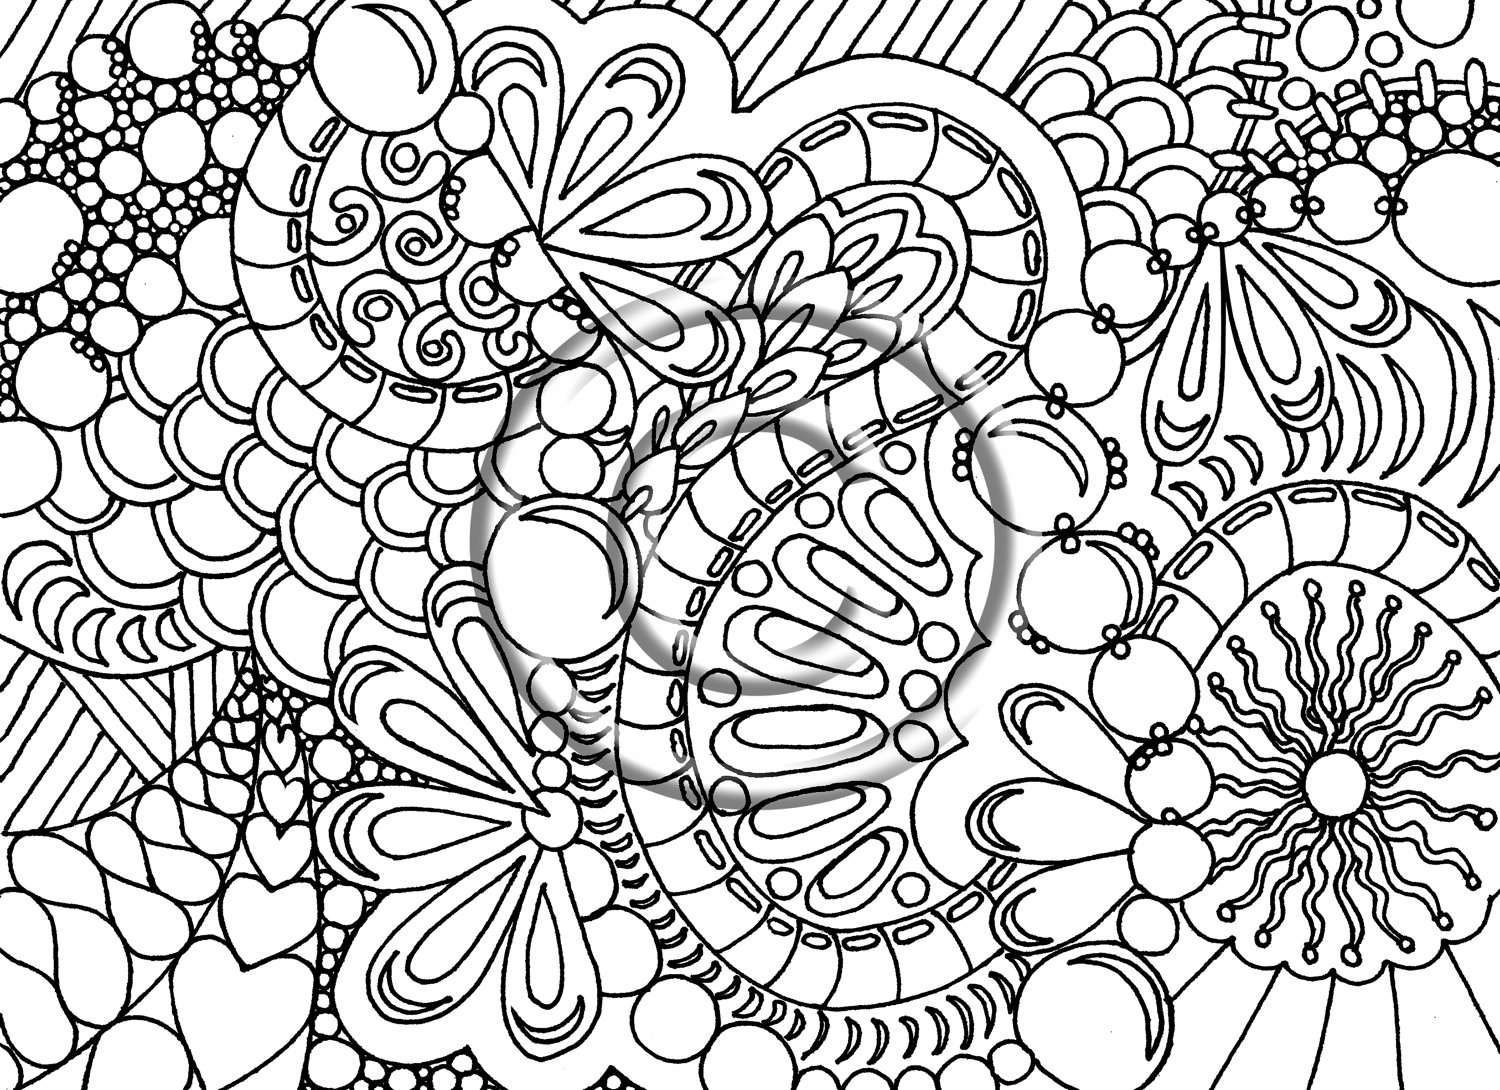 coloring pages hard coloring pages for adults difficult animals 44 coloring hard pages coloring